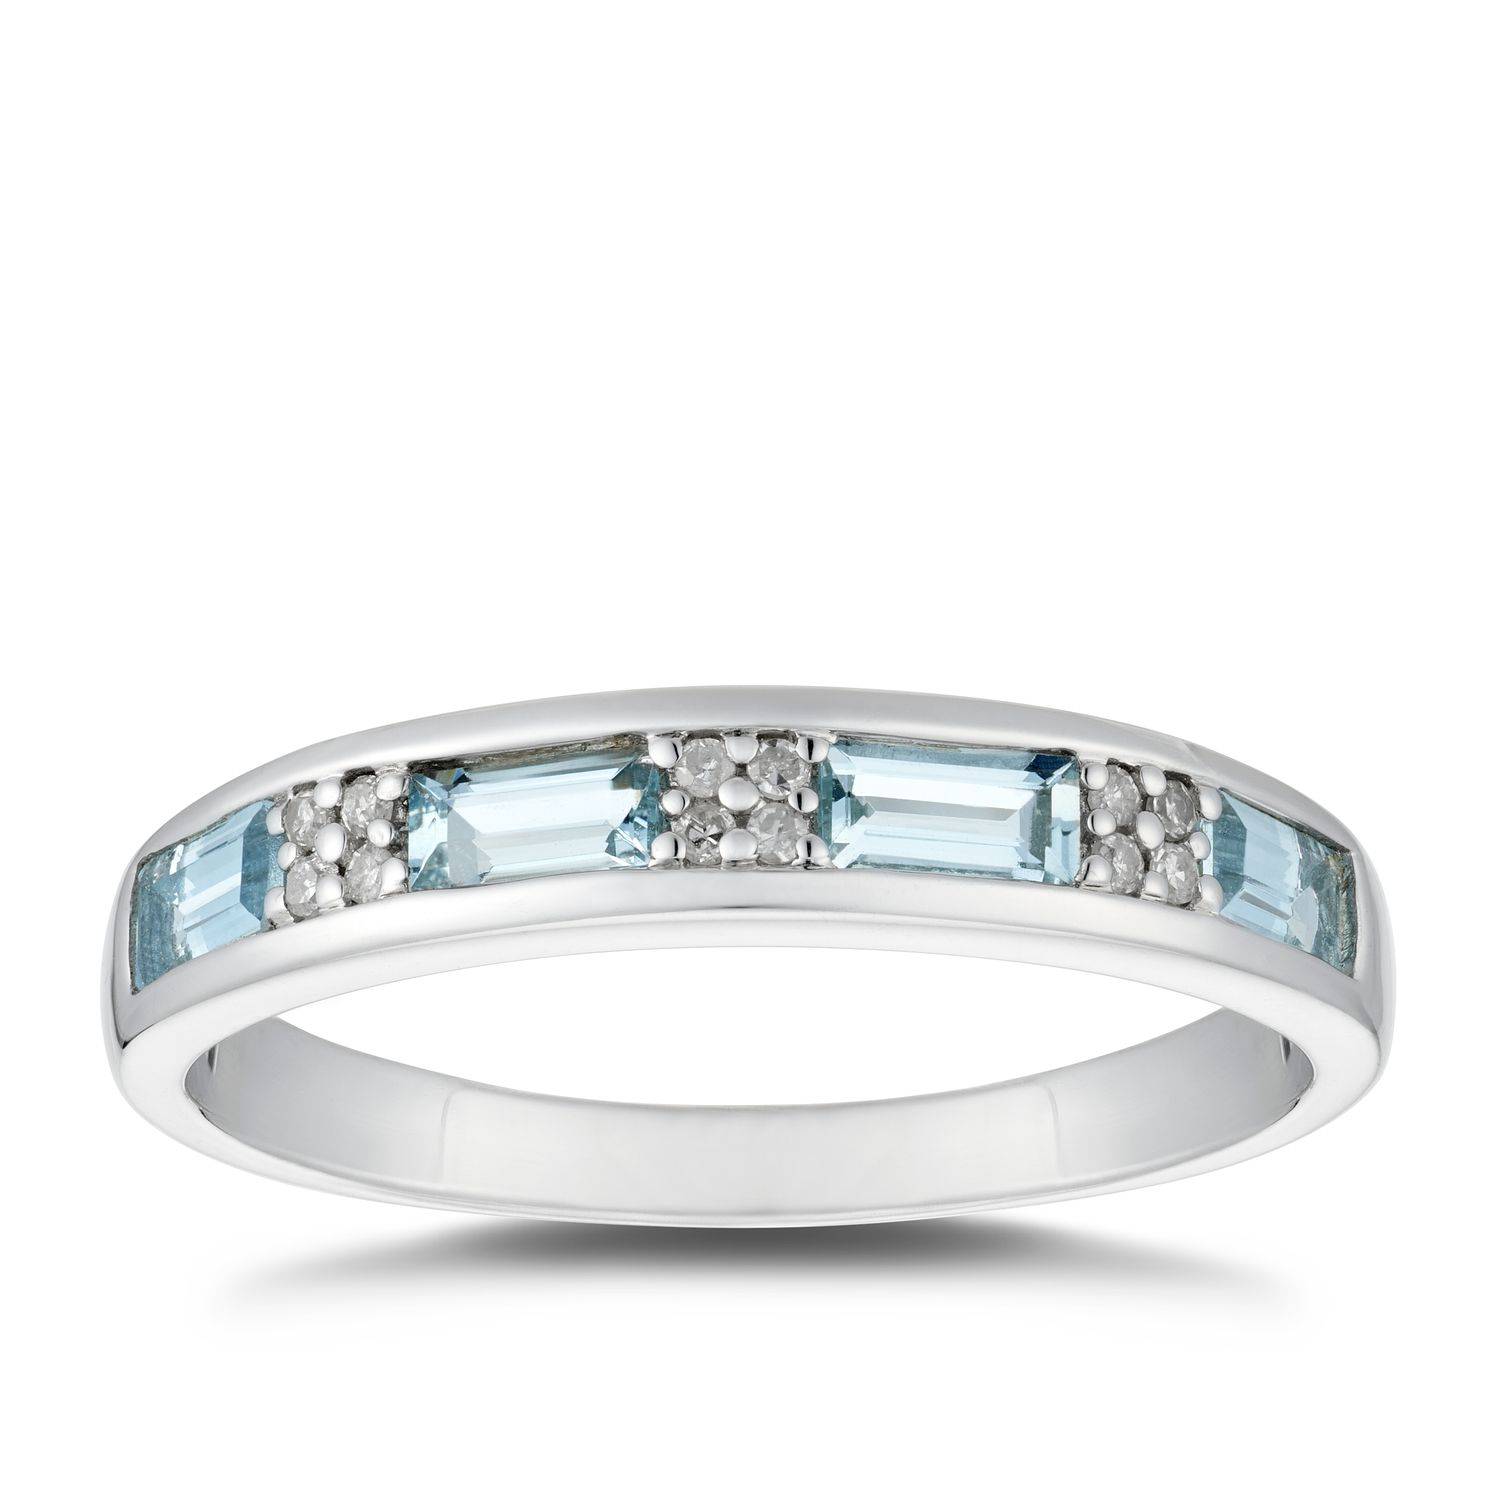 Silver Aquamarine & Diamond Eternity Ring - Product number 5040140